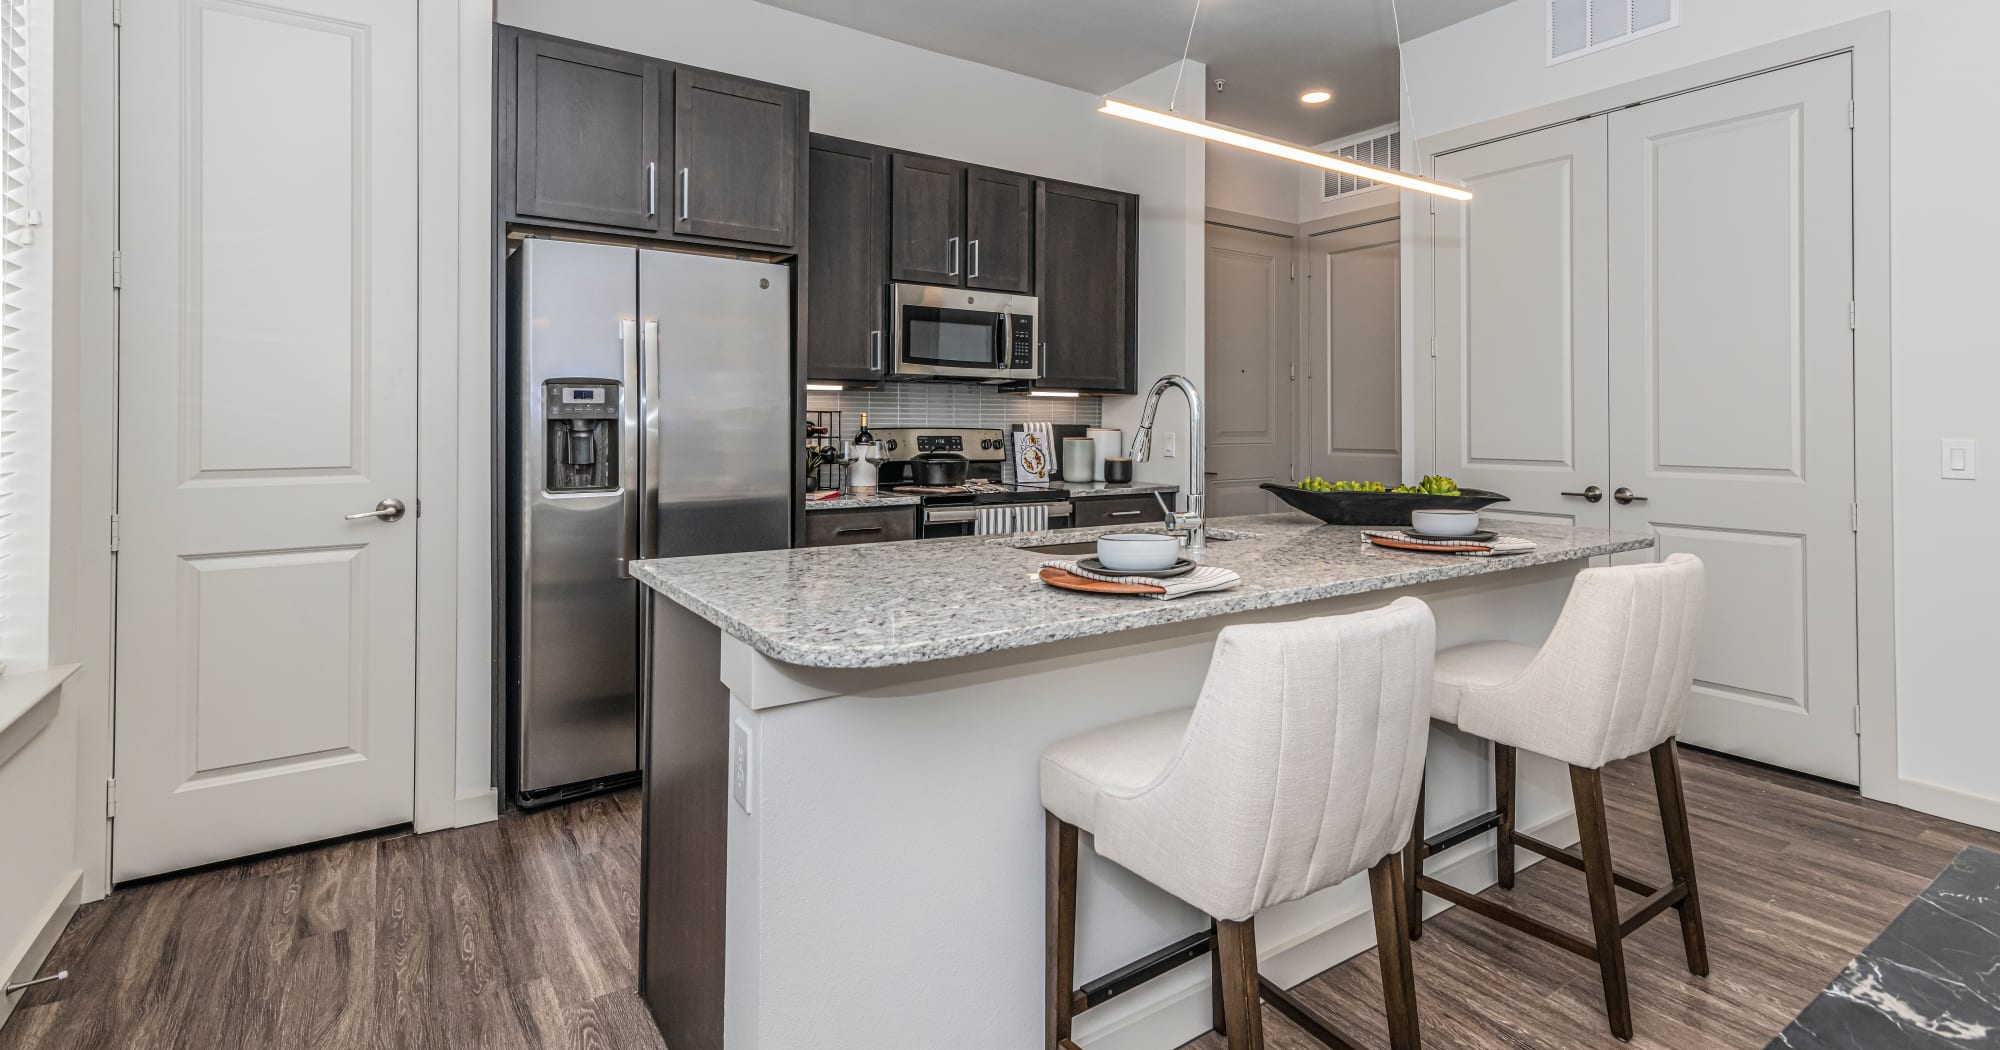 Apartments at Magnolia on the Green in Allen, Texas